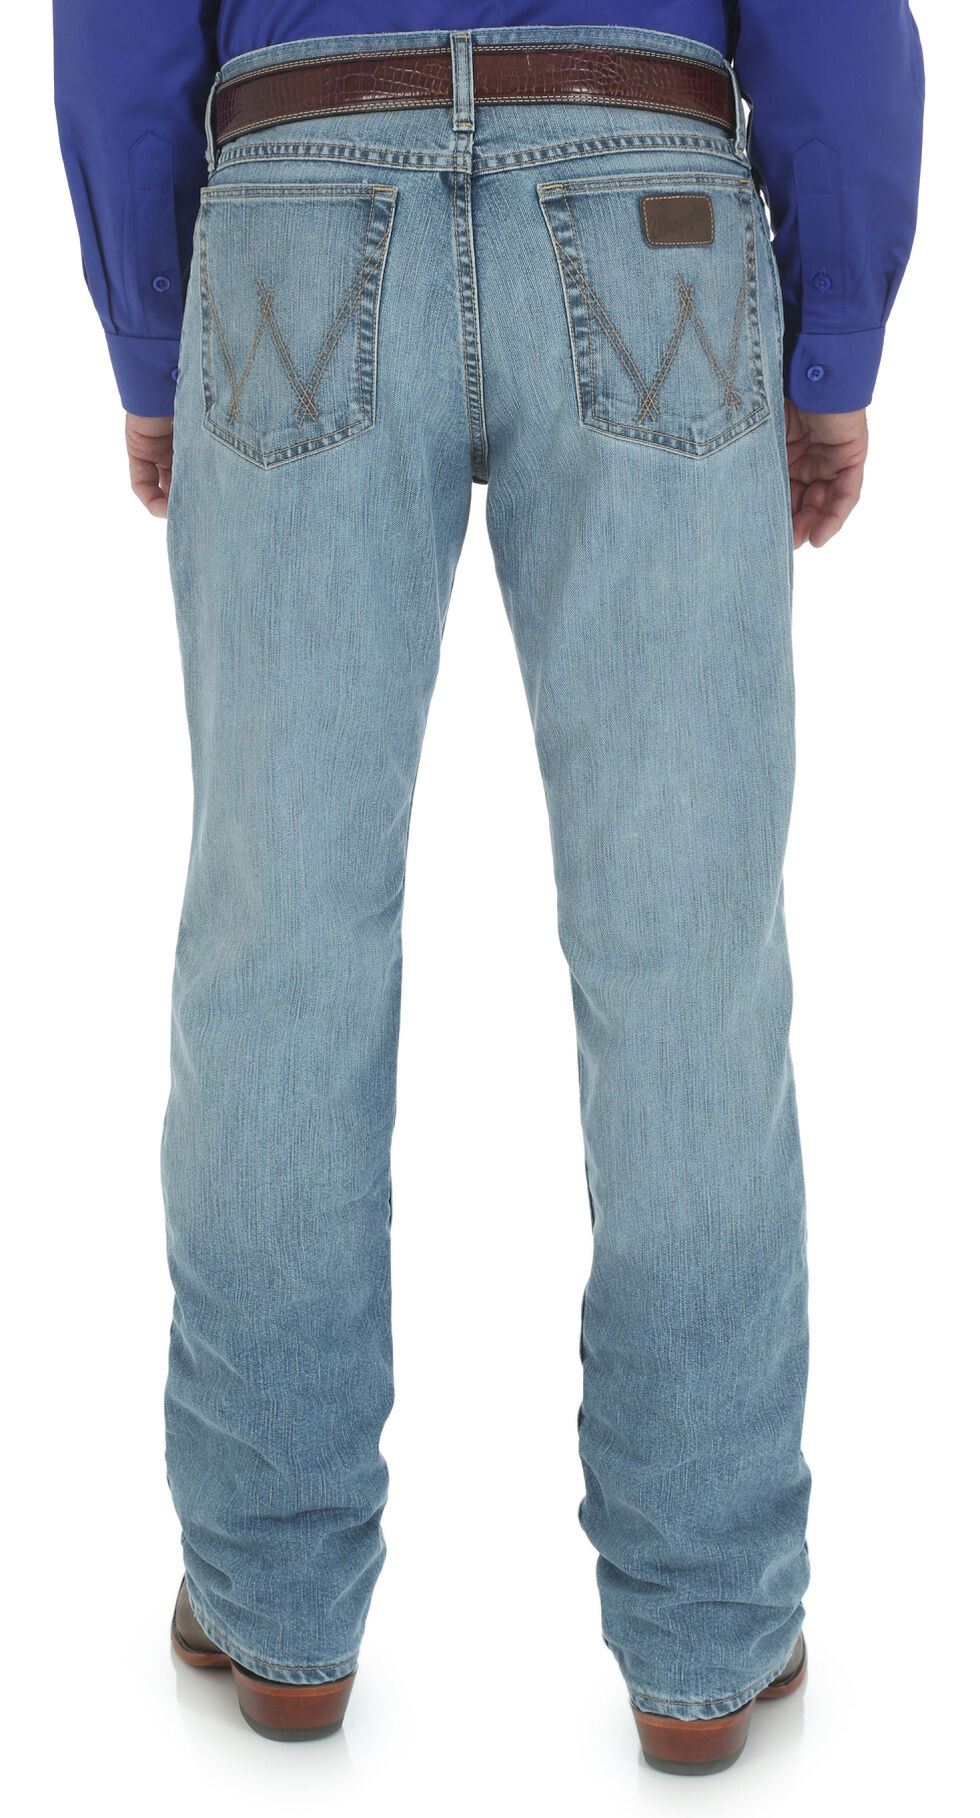 Wrangler Men's 20X Cool Vantage Competition Slim Jeans - Ocean Blue, Denim, hi-res